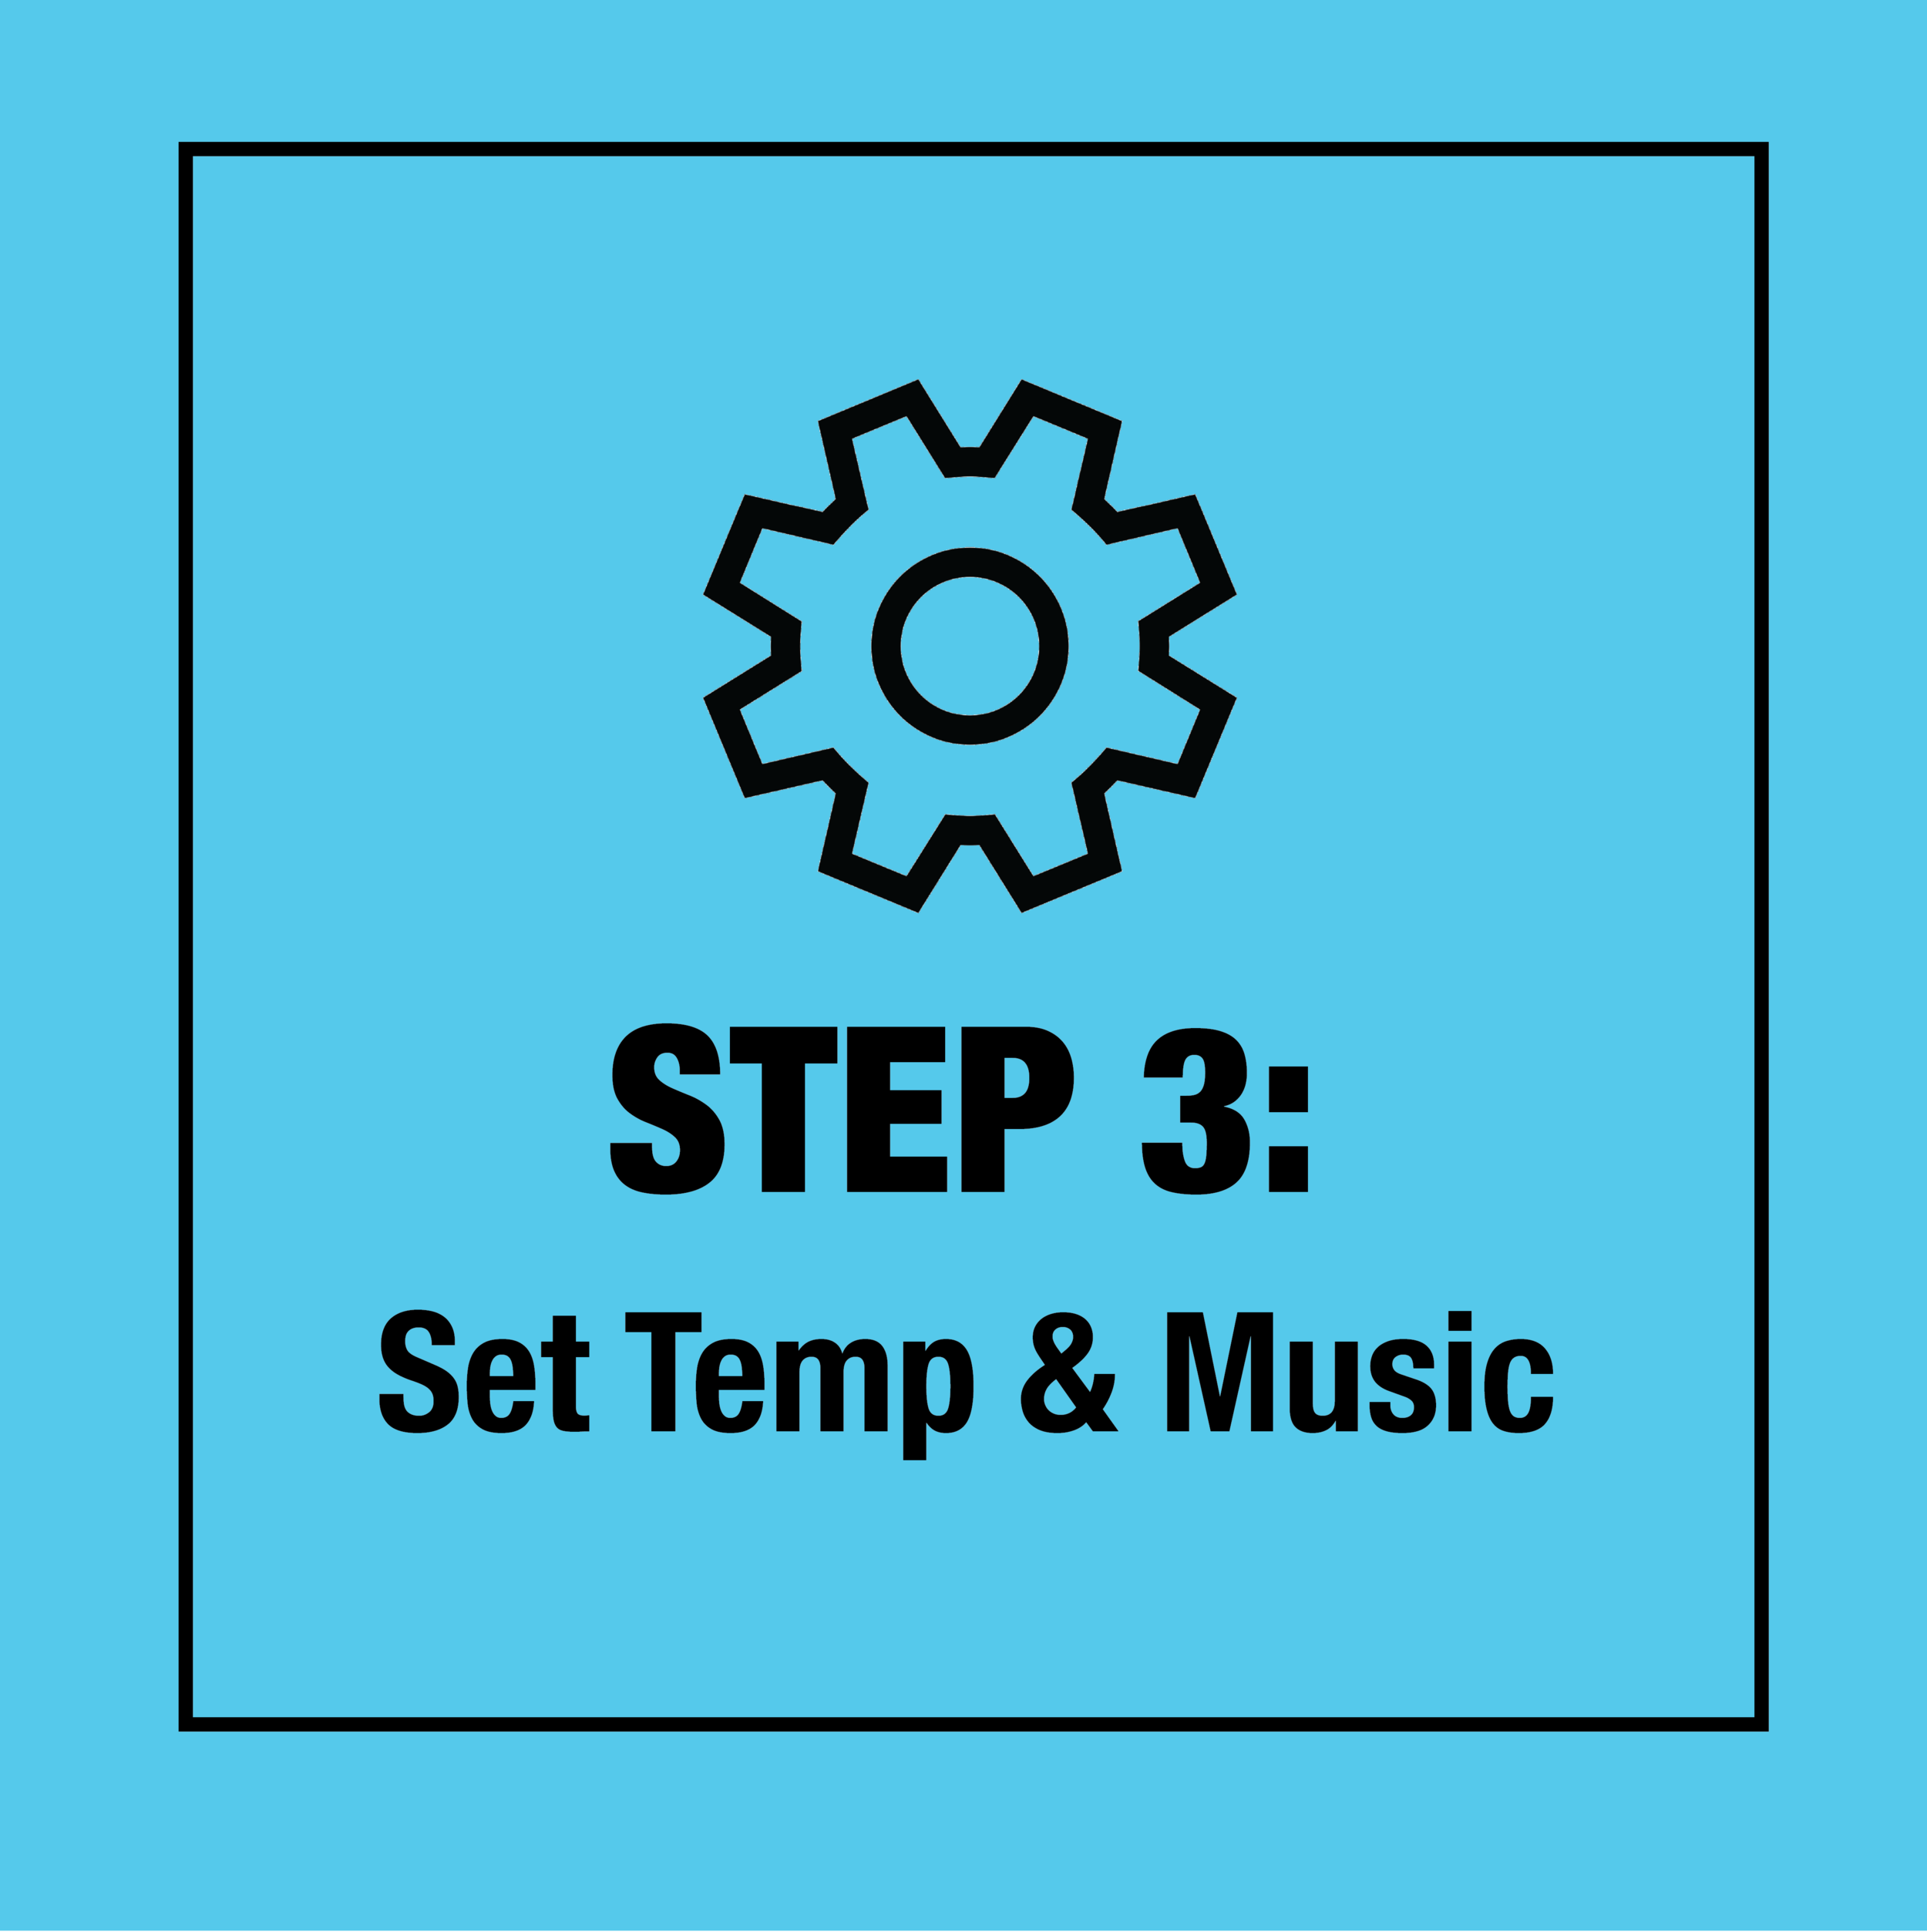 Choose your cold level and choose your favorite track to freeze to.